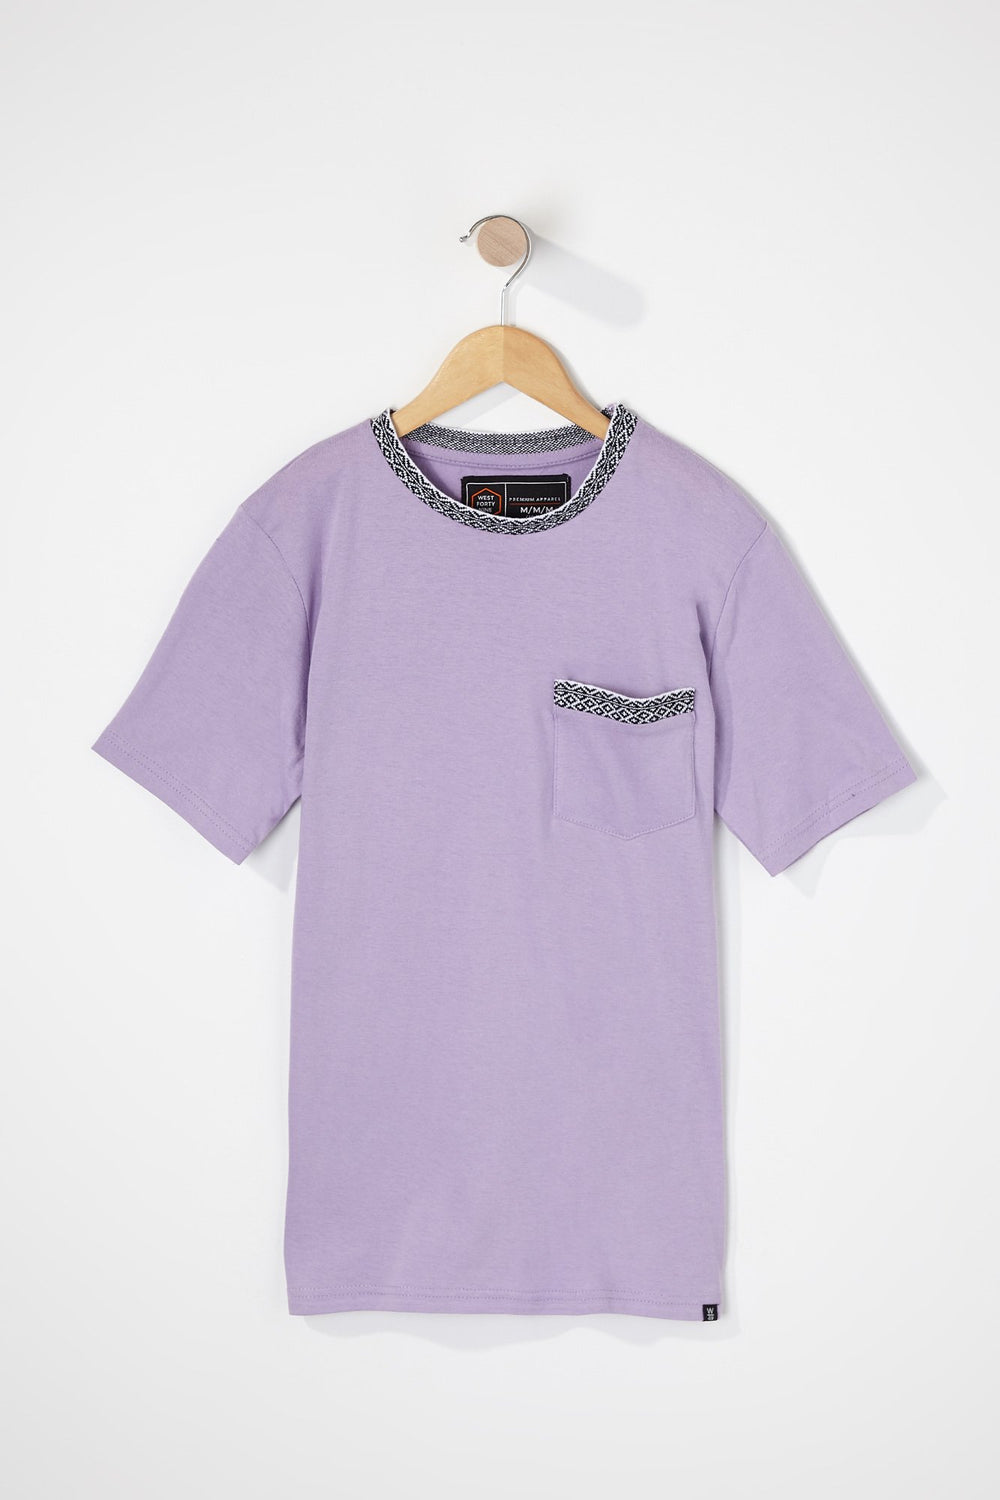 West49 Boys Contrast Pocket And Collar T-Shirt Lilac